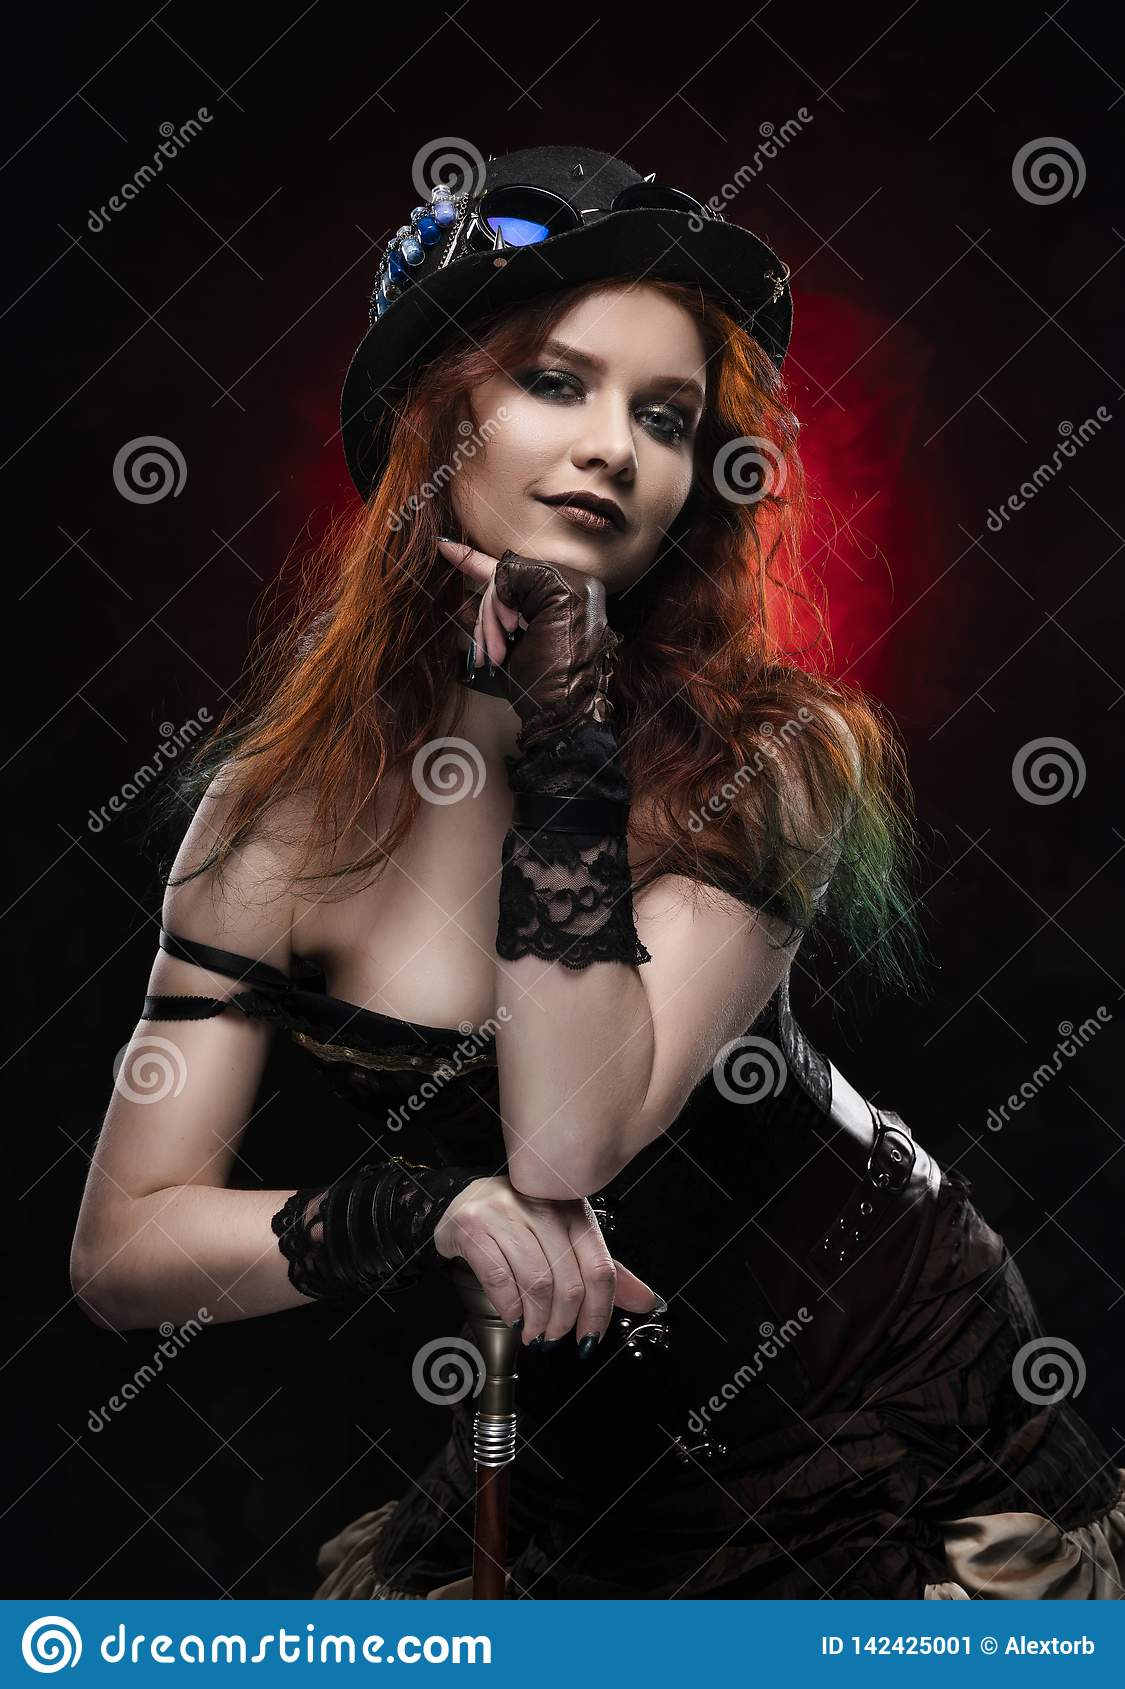 Beautiful smiling redhead cosplayer girl wearing a Victorian-style steampunk costume and hat with a big breast in a deep neckline